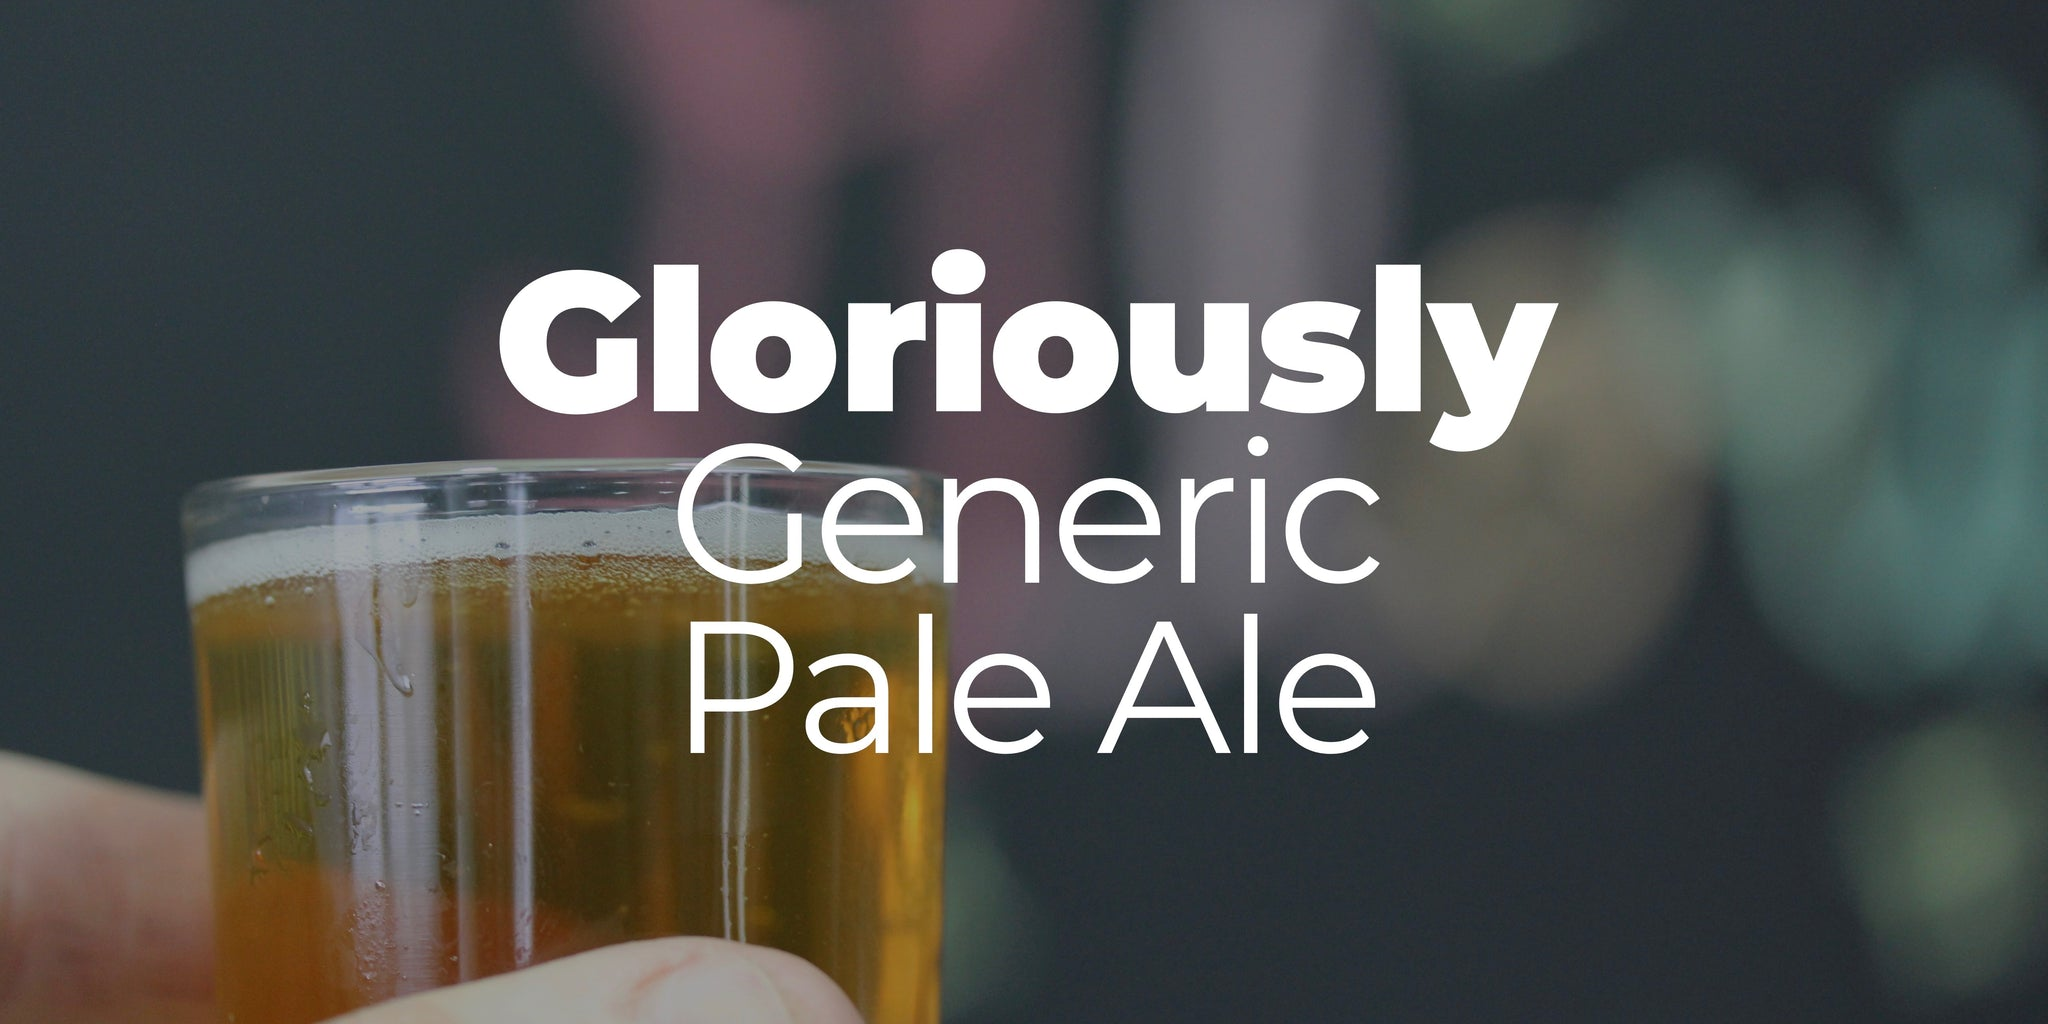 April 2019 Beer of the Month: Gloriously Generic Pale Ale